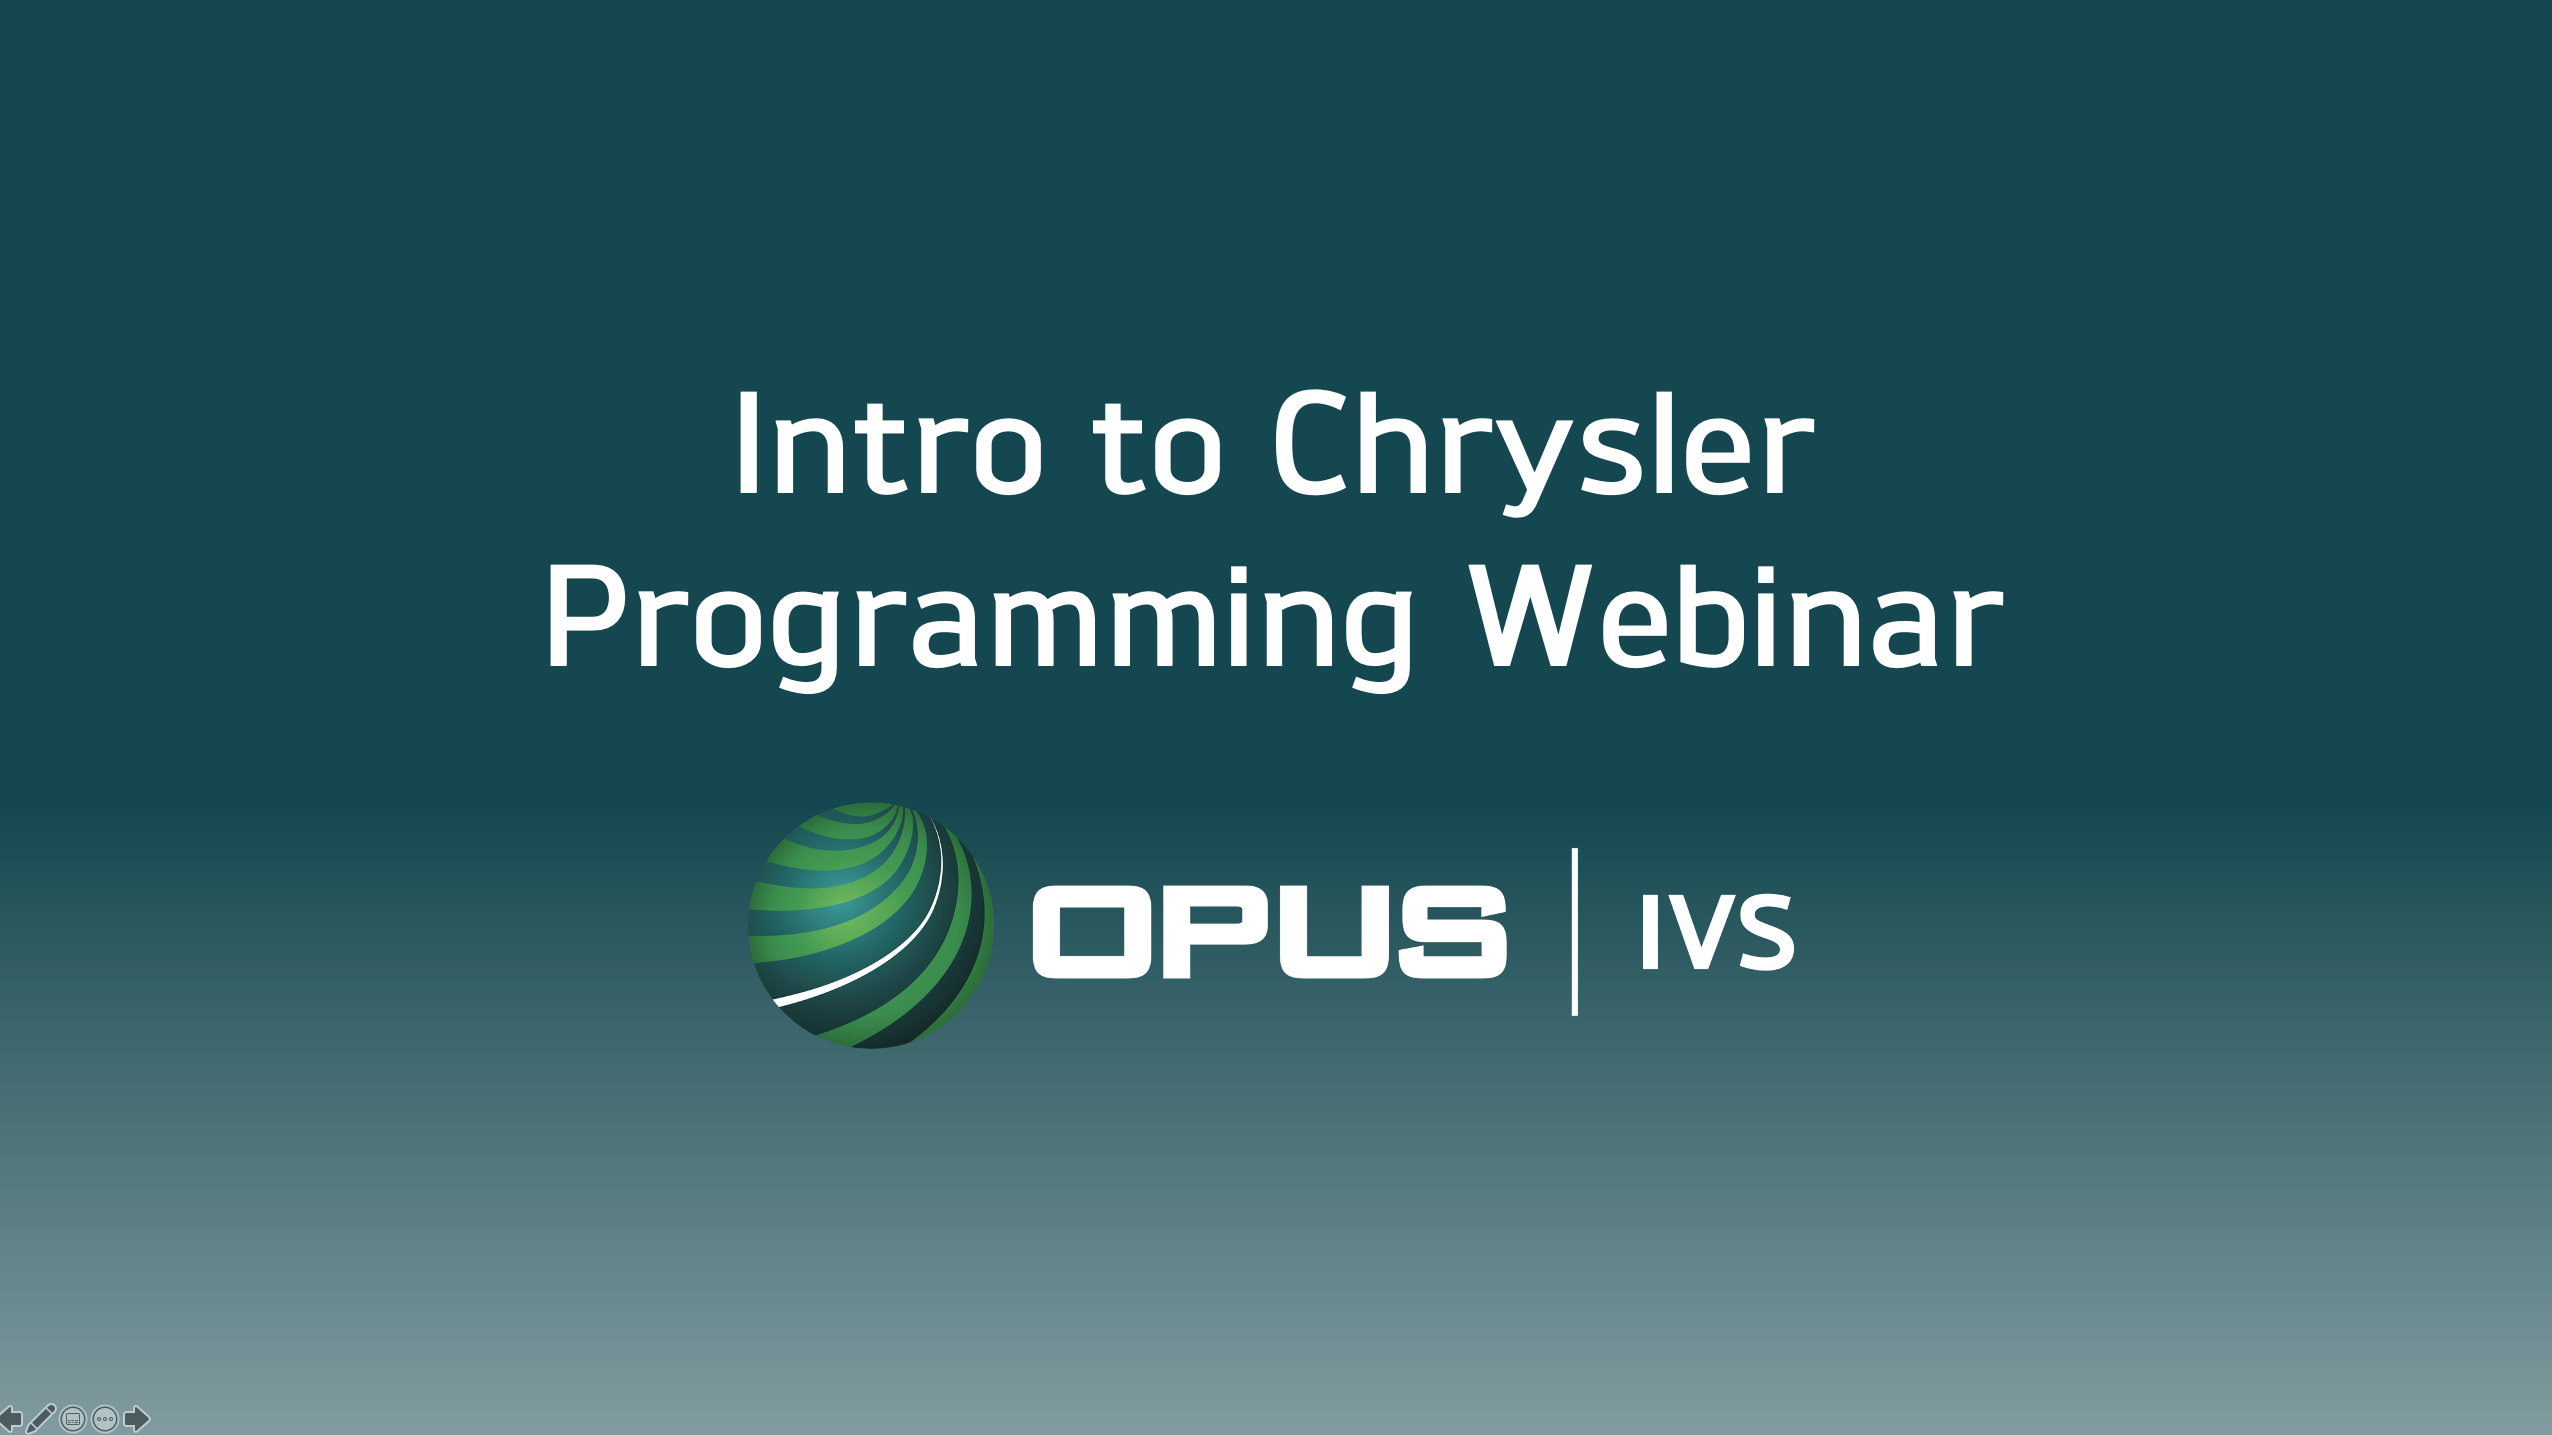 Opus IVS to Offer Webinar on Chrysler Programming